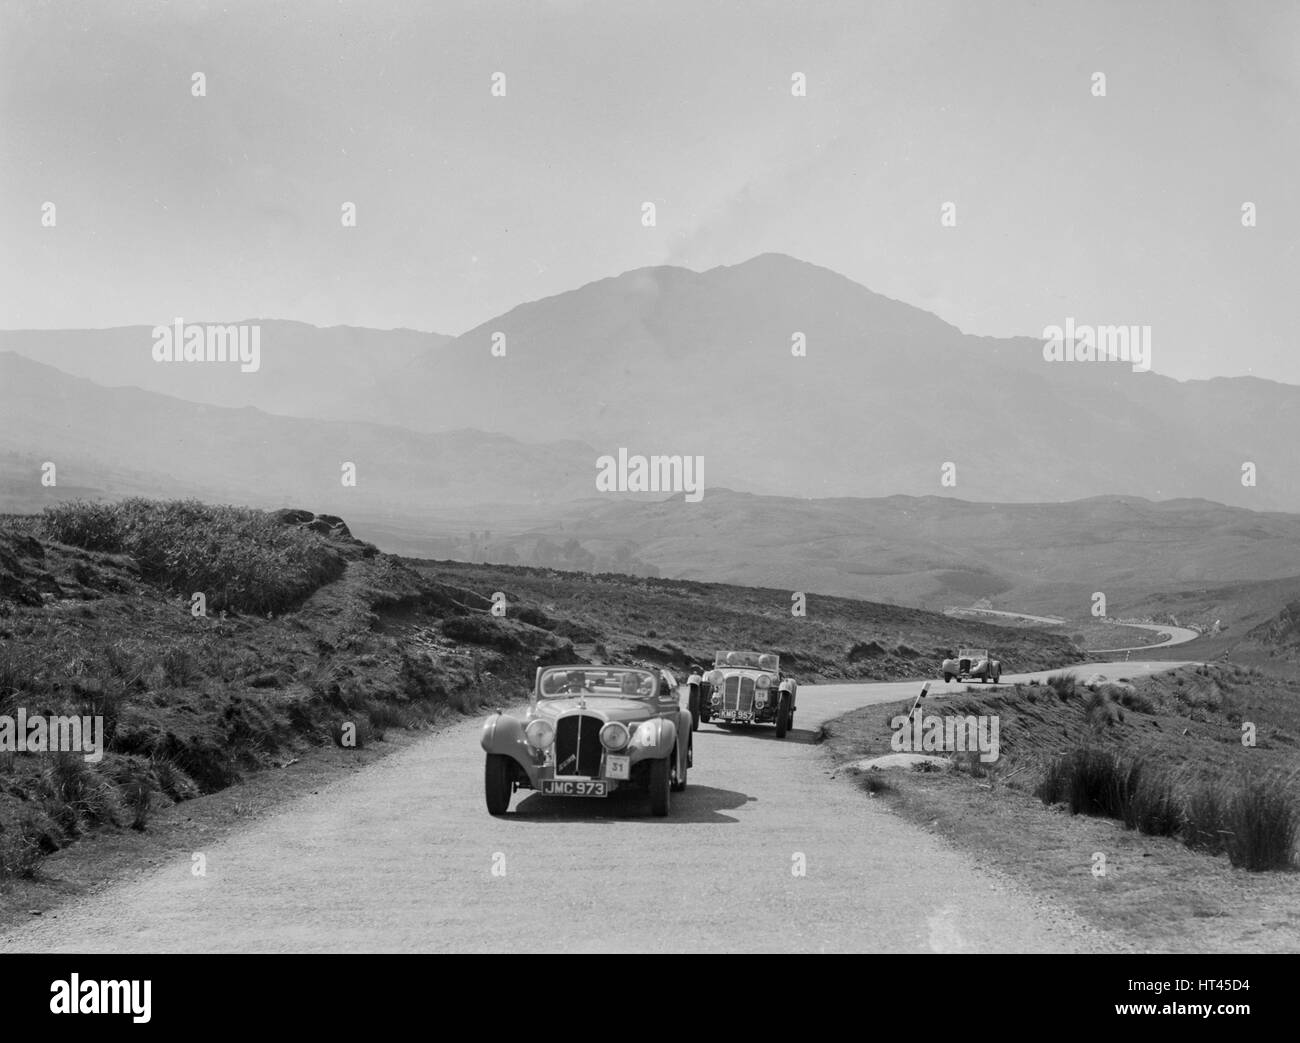 Atalanta of Joan Brotchie competing in the RSAC Scottish Rally, 1939. Artist: Bill Brunell. - Stock Image